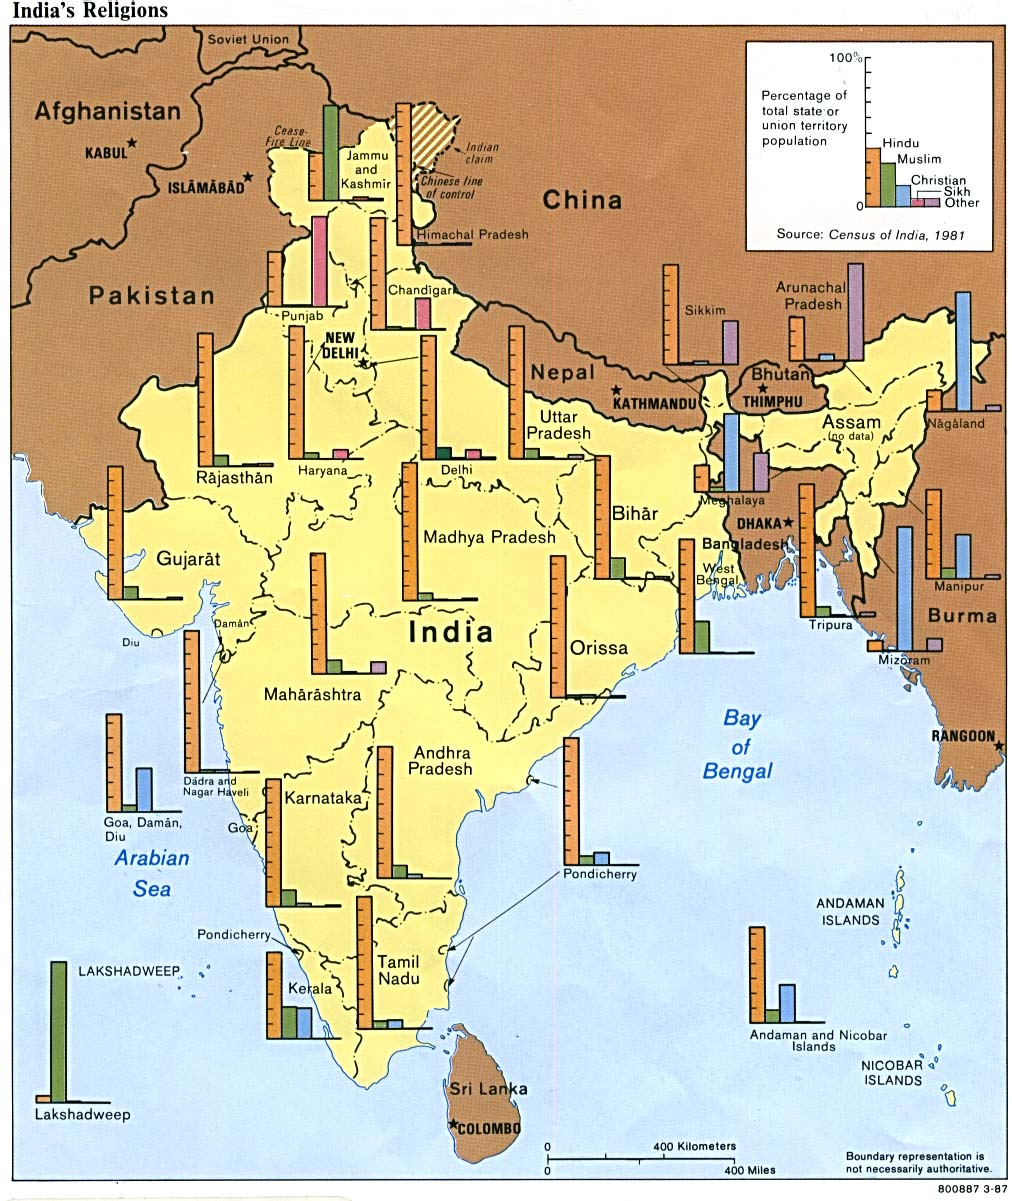 Religion in India - Breakdown by State - Awesome Stories